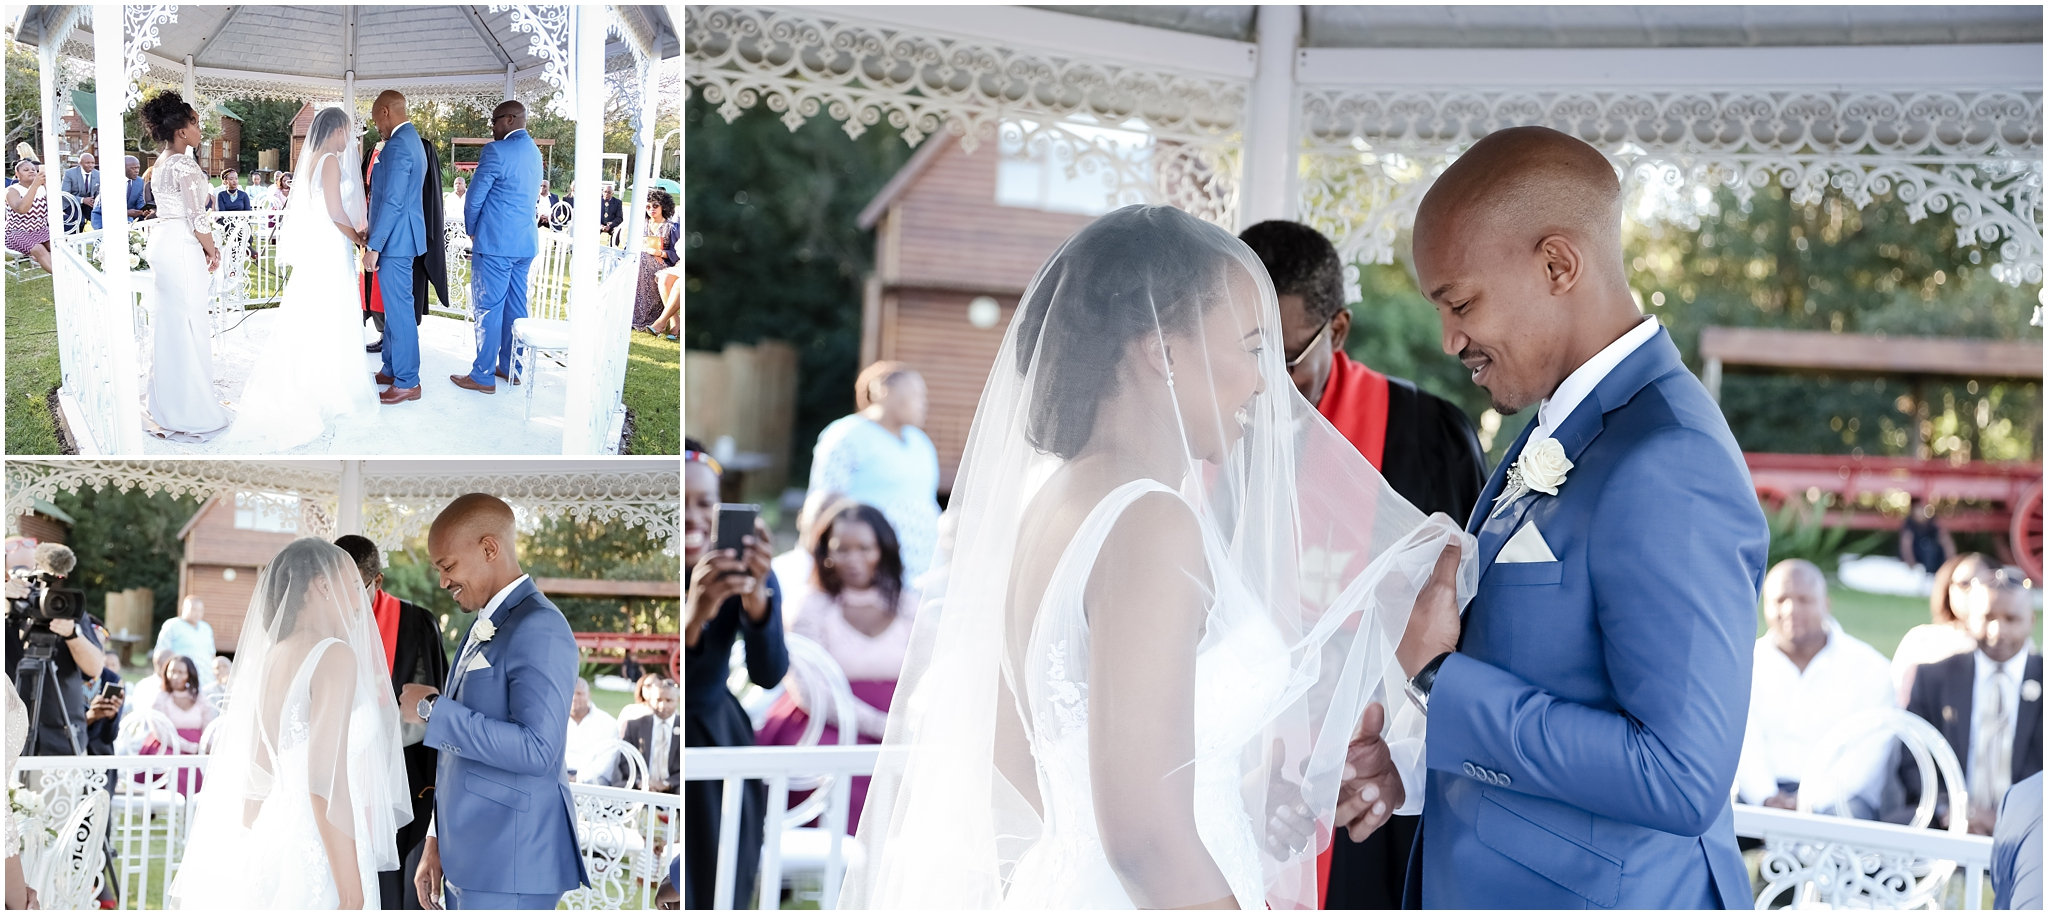 lelethu-kgotsos-wedding-candice-dollery-photography_1638